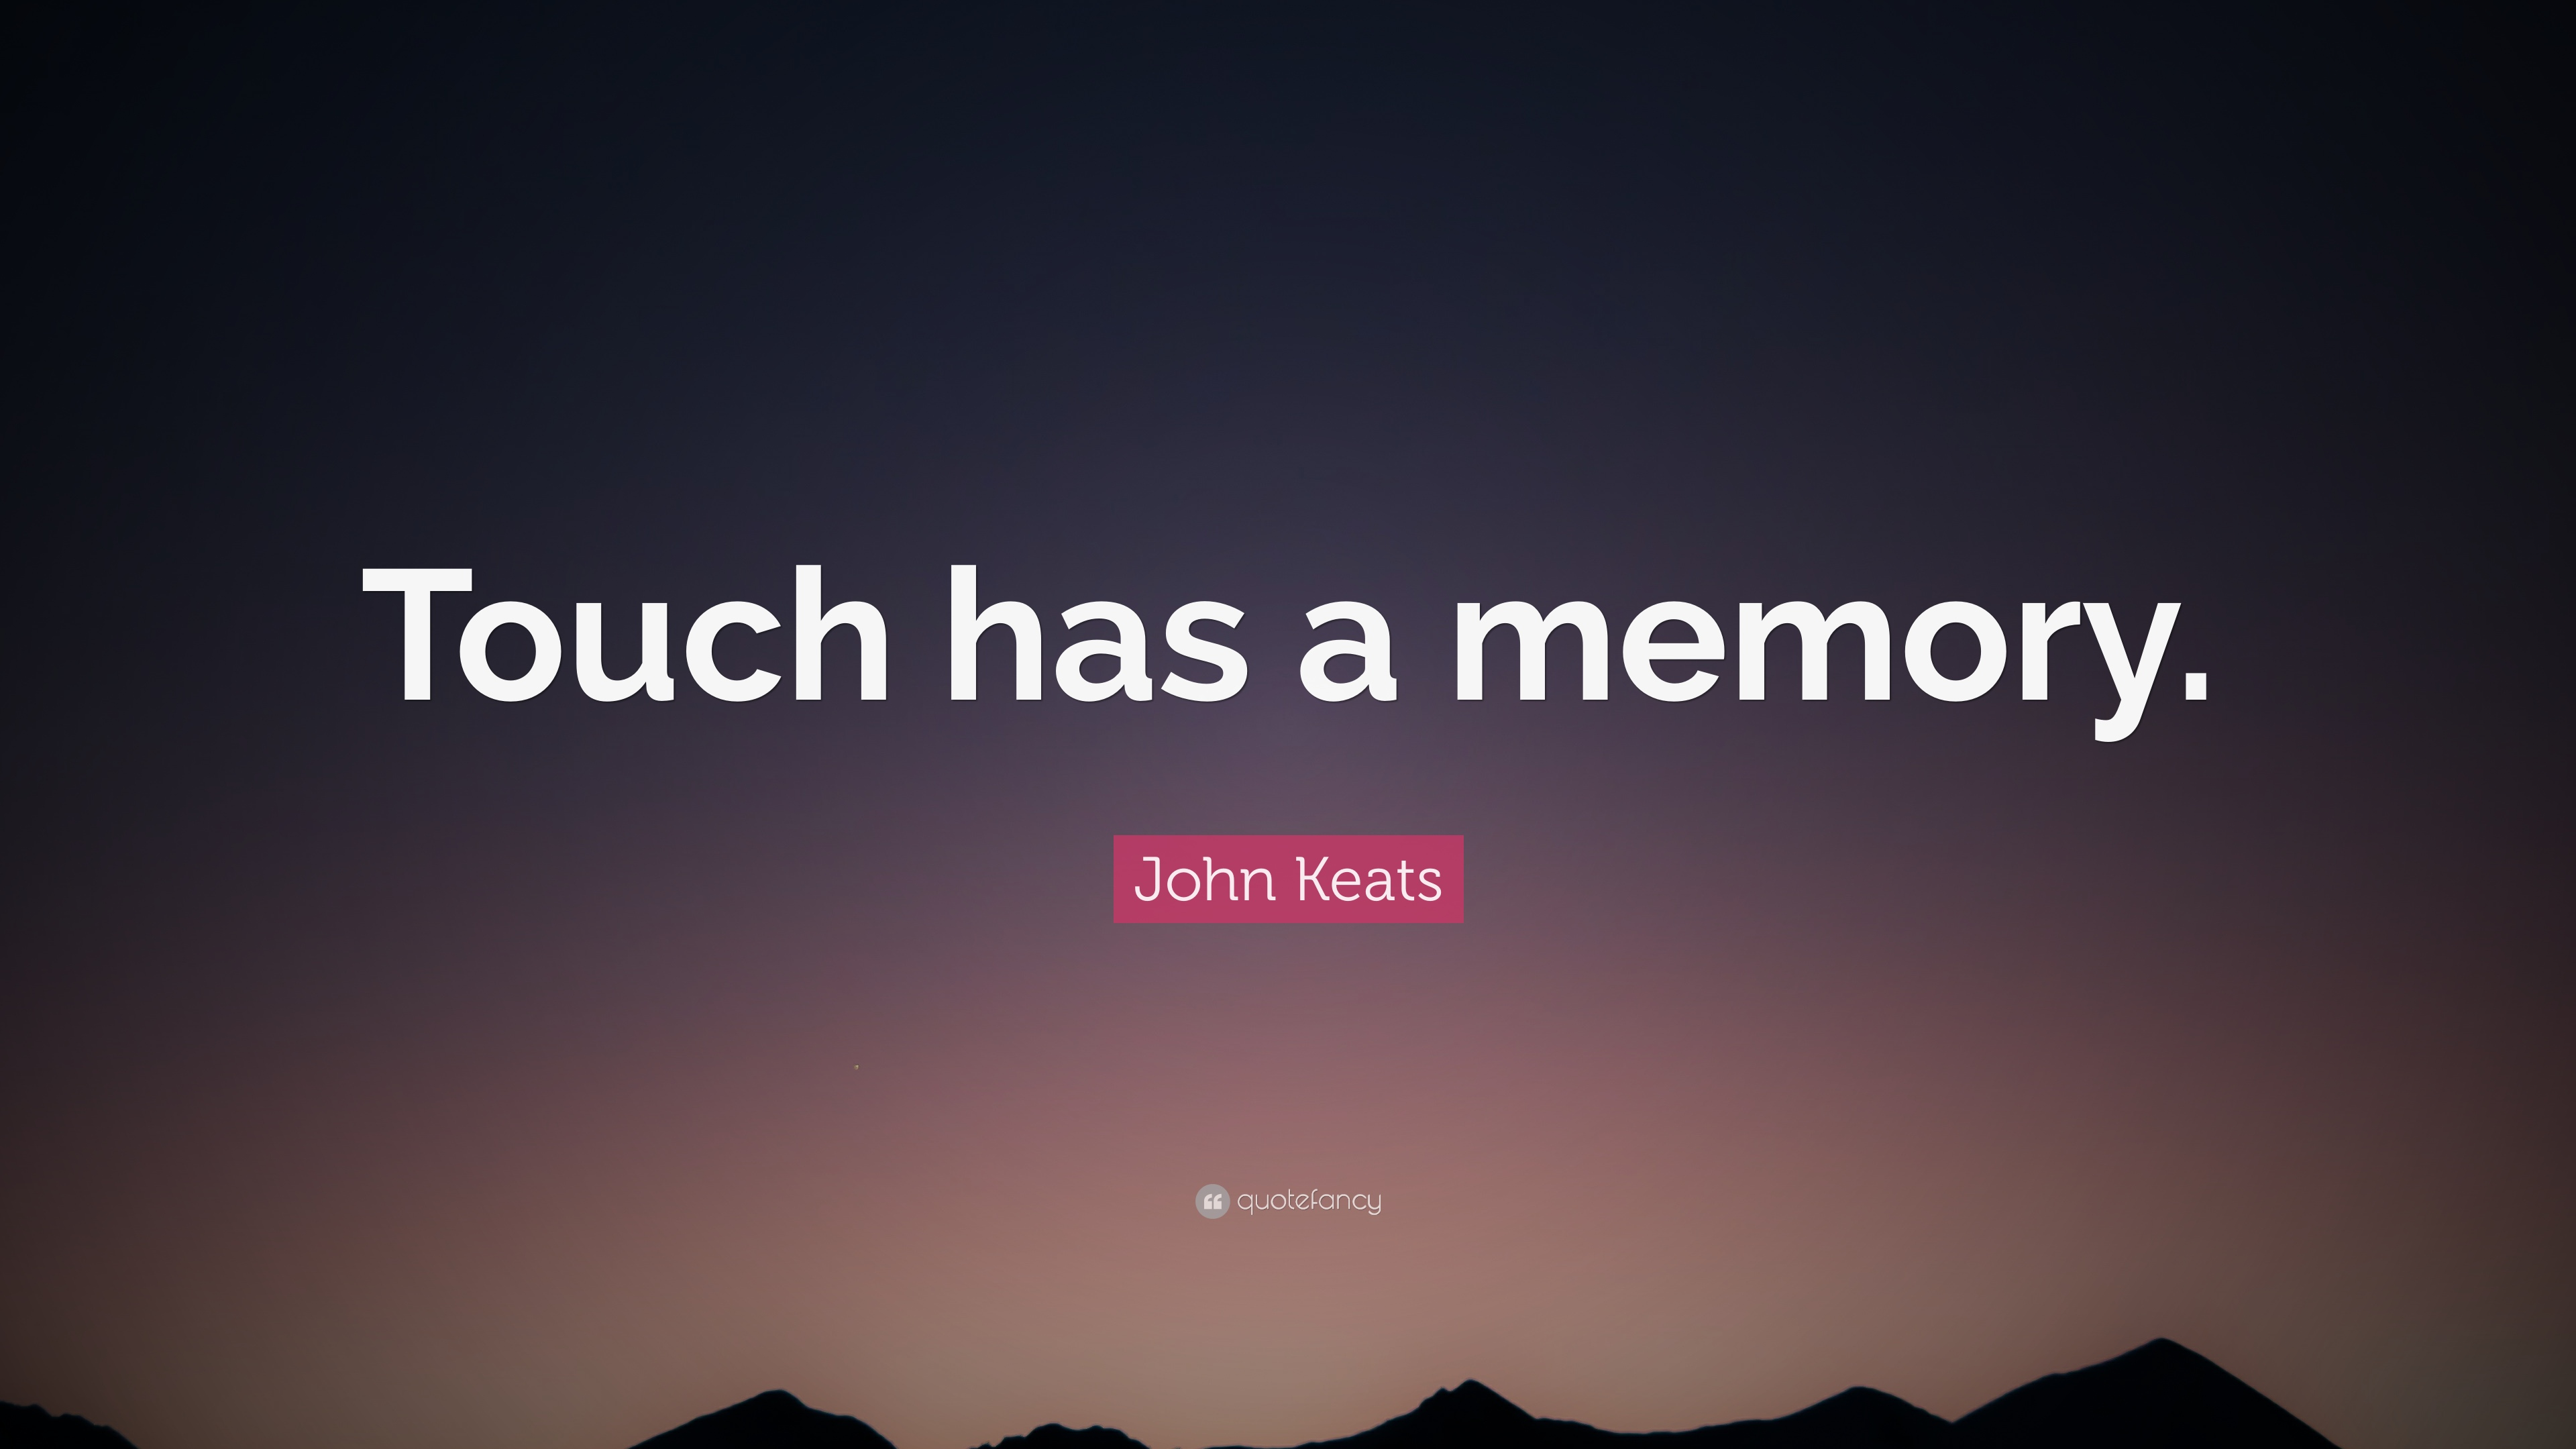 """John Keats Quote: """"Touch has a memory."""" (6 wallpapers) - Quotefancy"""